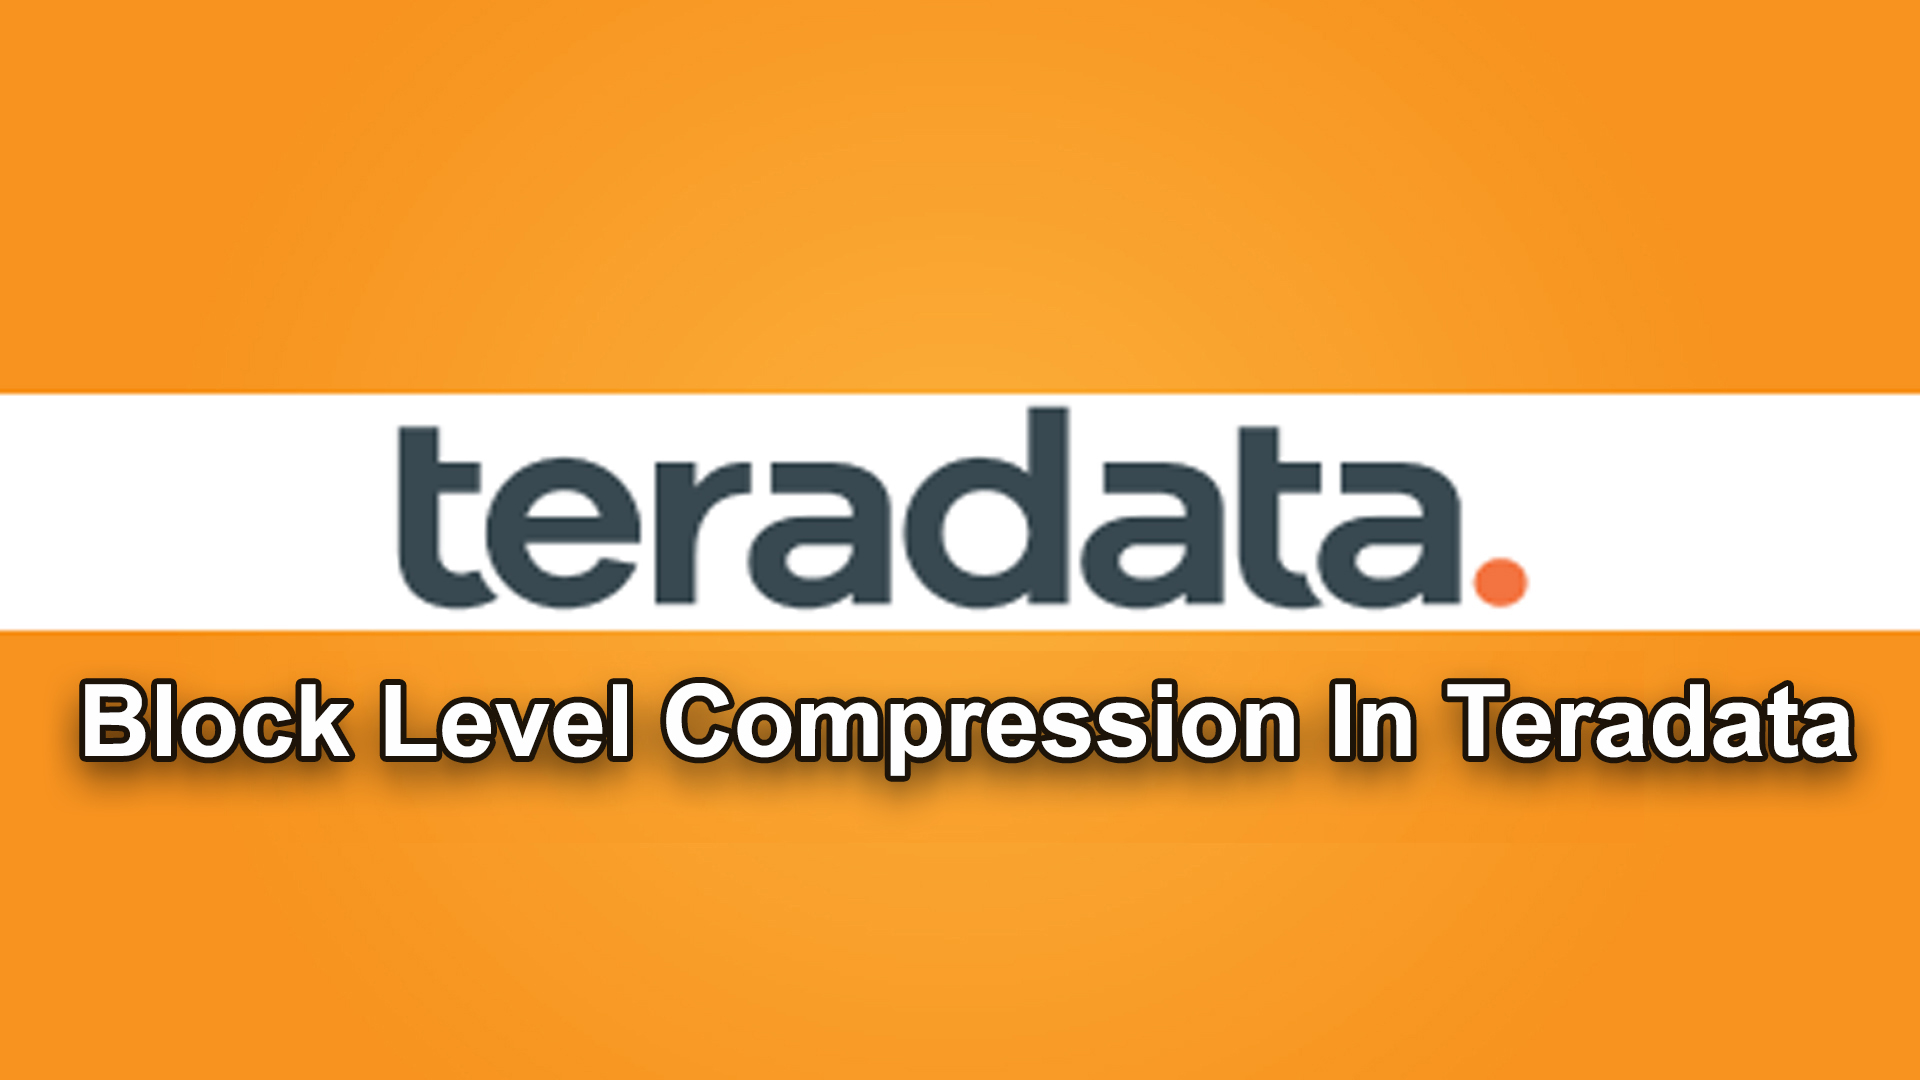 BLOCK LEVEL COMPRESSION IN TERADATA